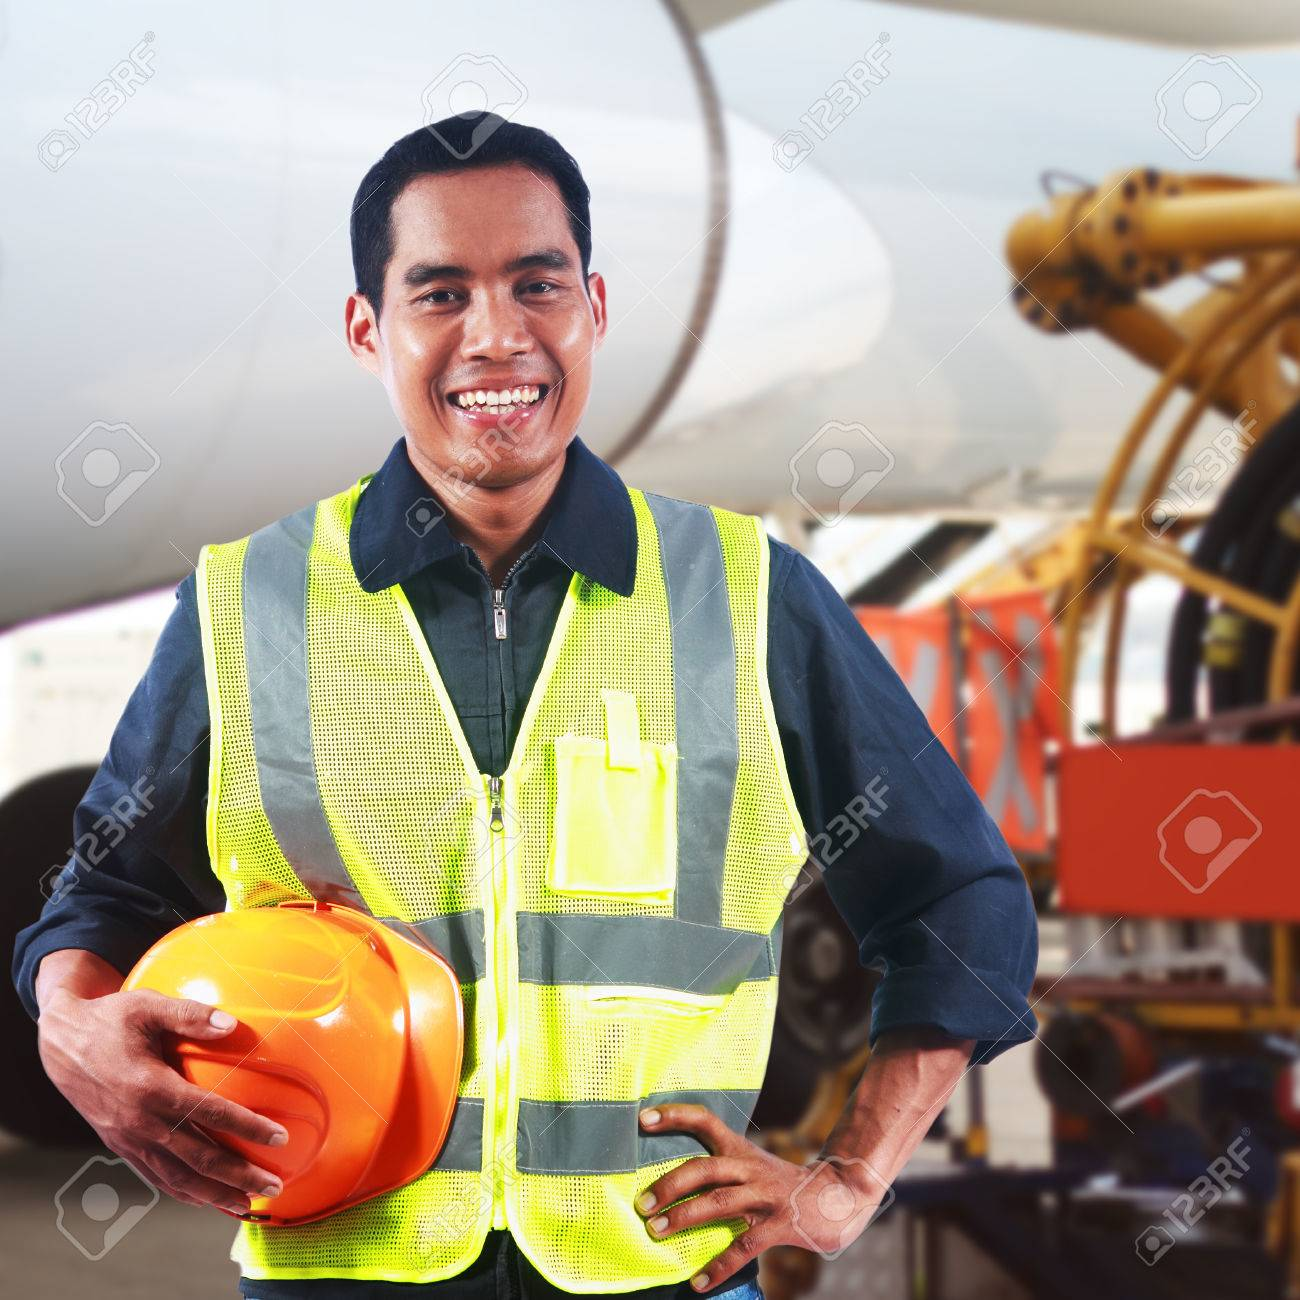 Portrait of asian professional engineer holding safety helmet at work Stock Photo - 27581344